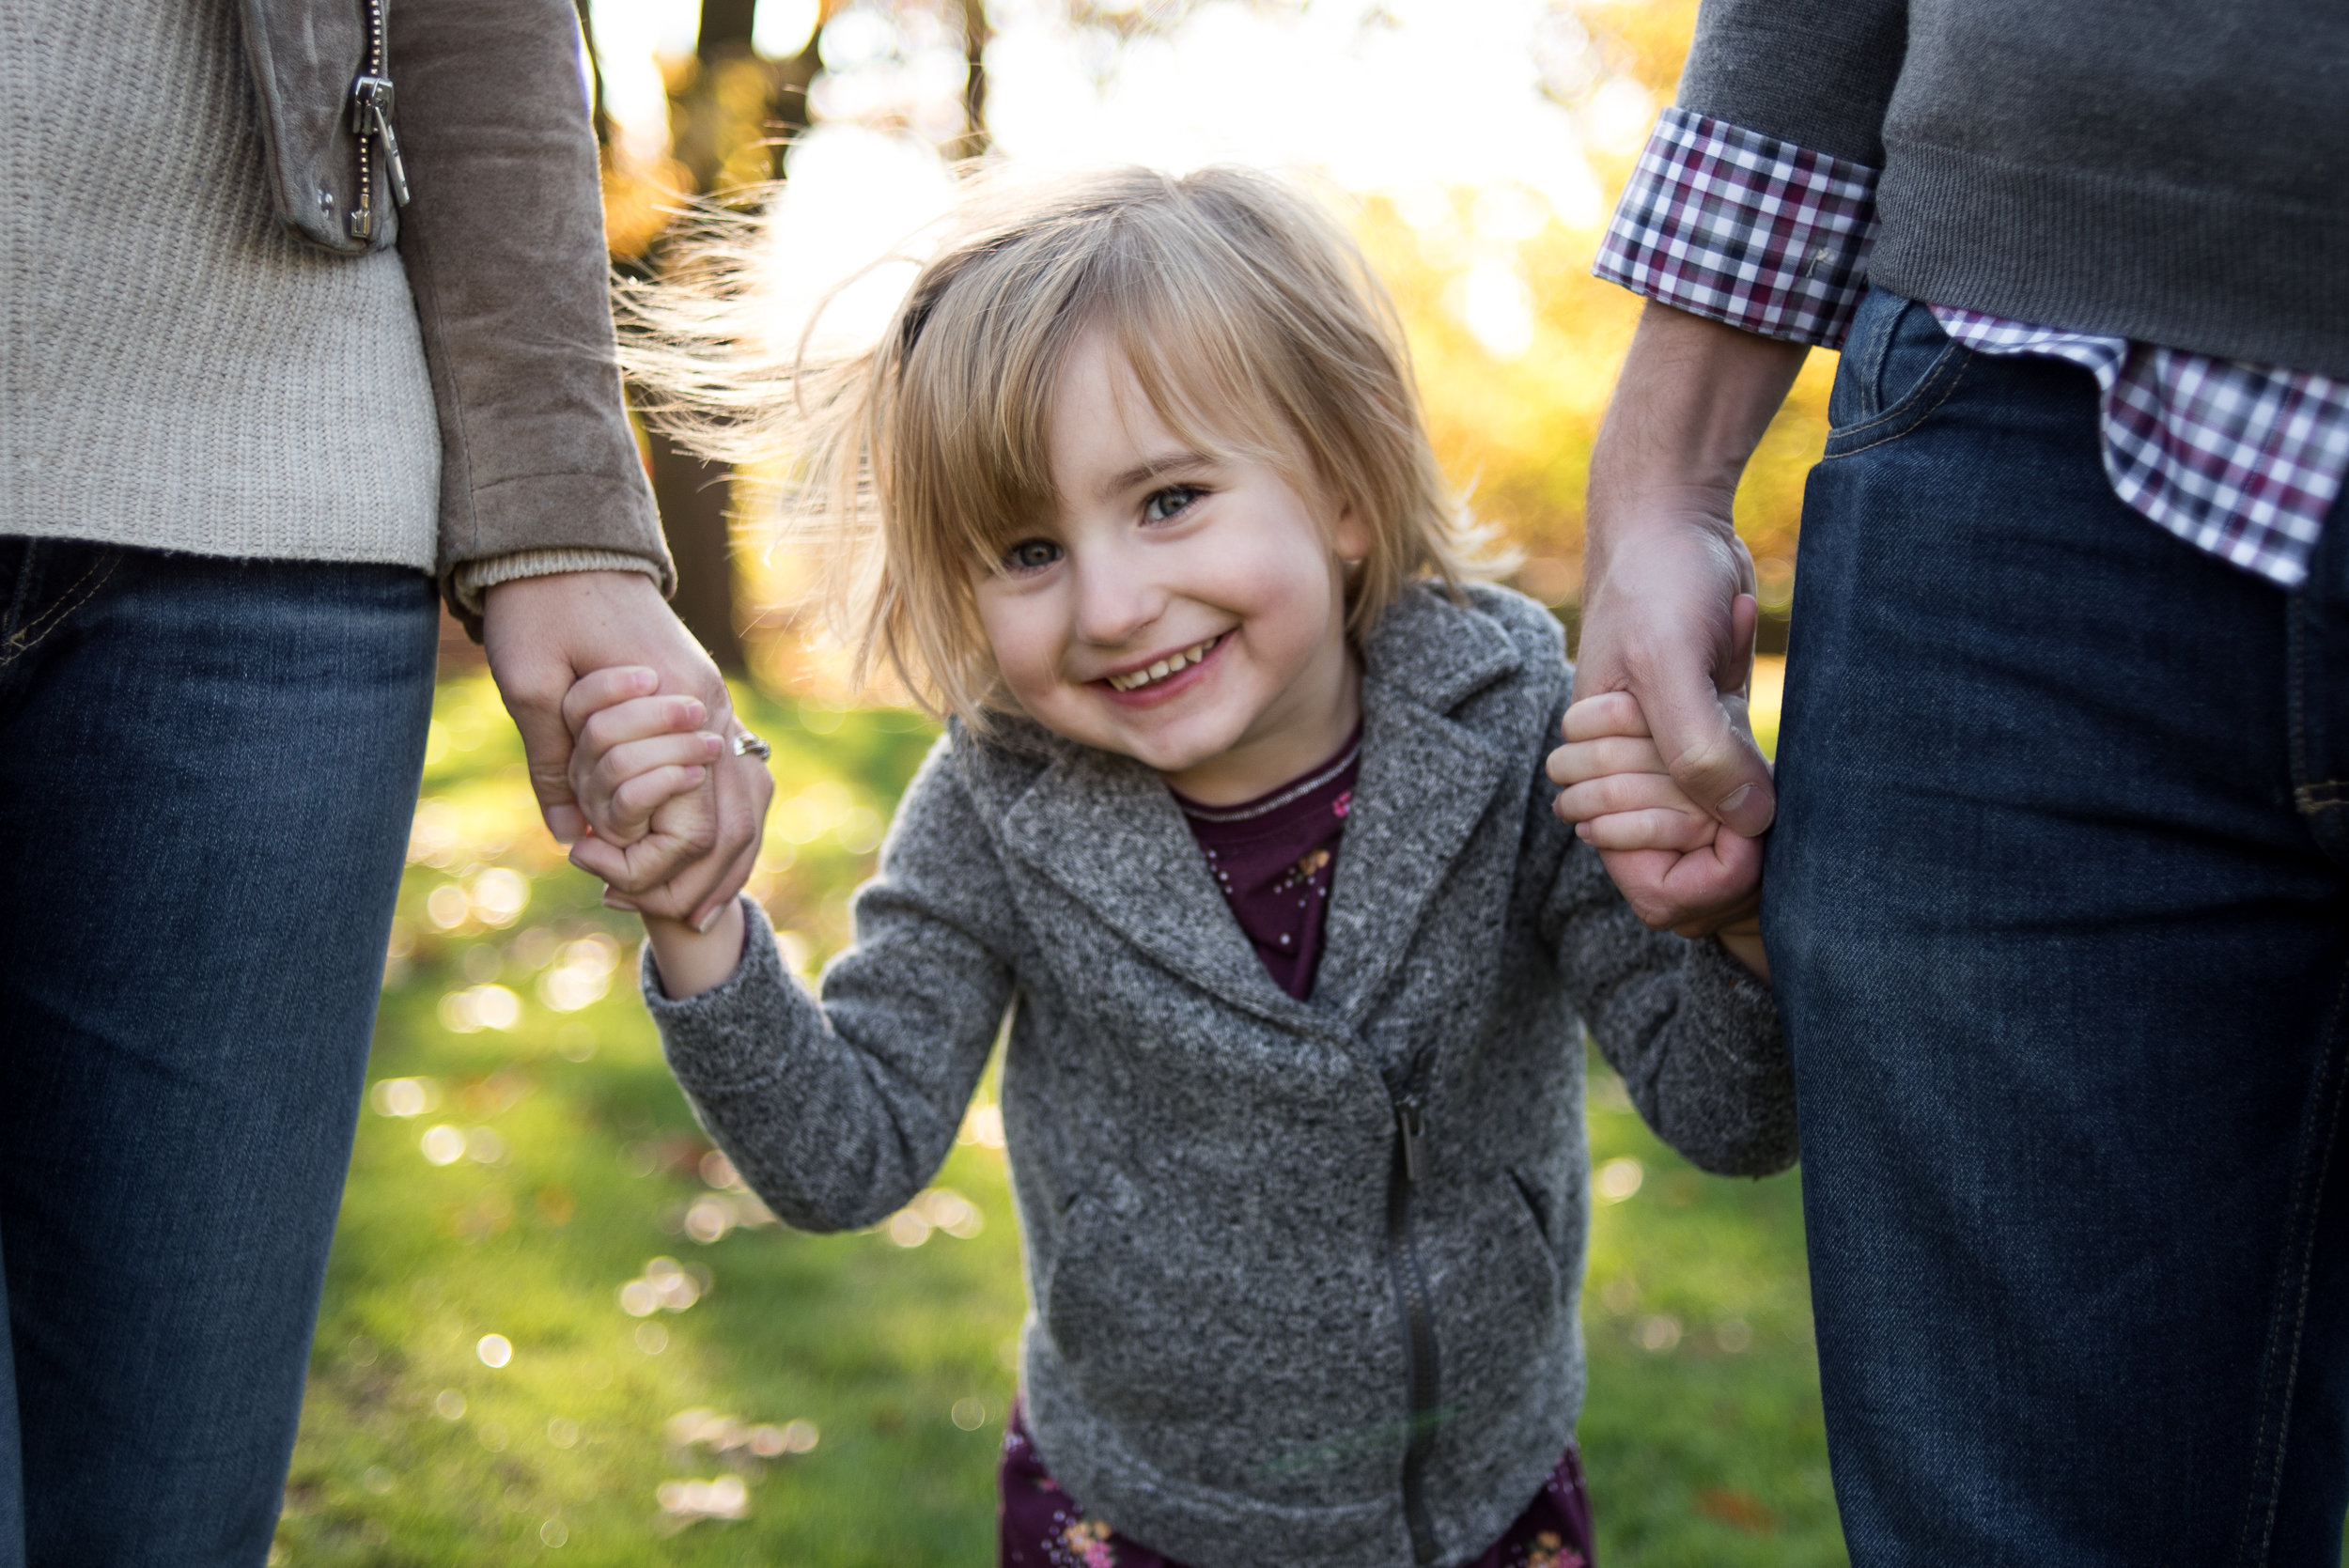 Close up of young girl holding parents hands in Portland park